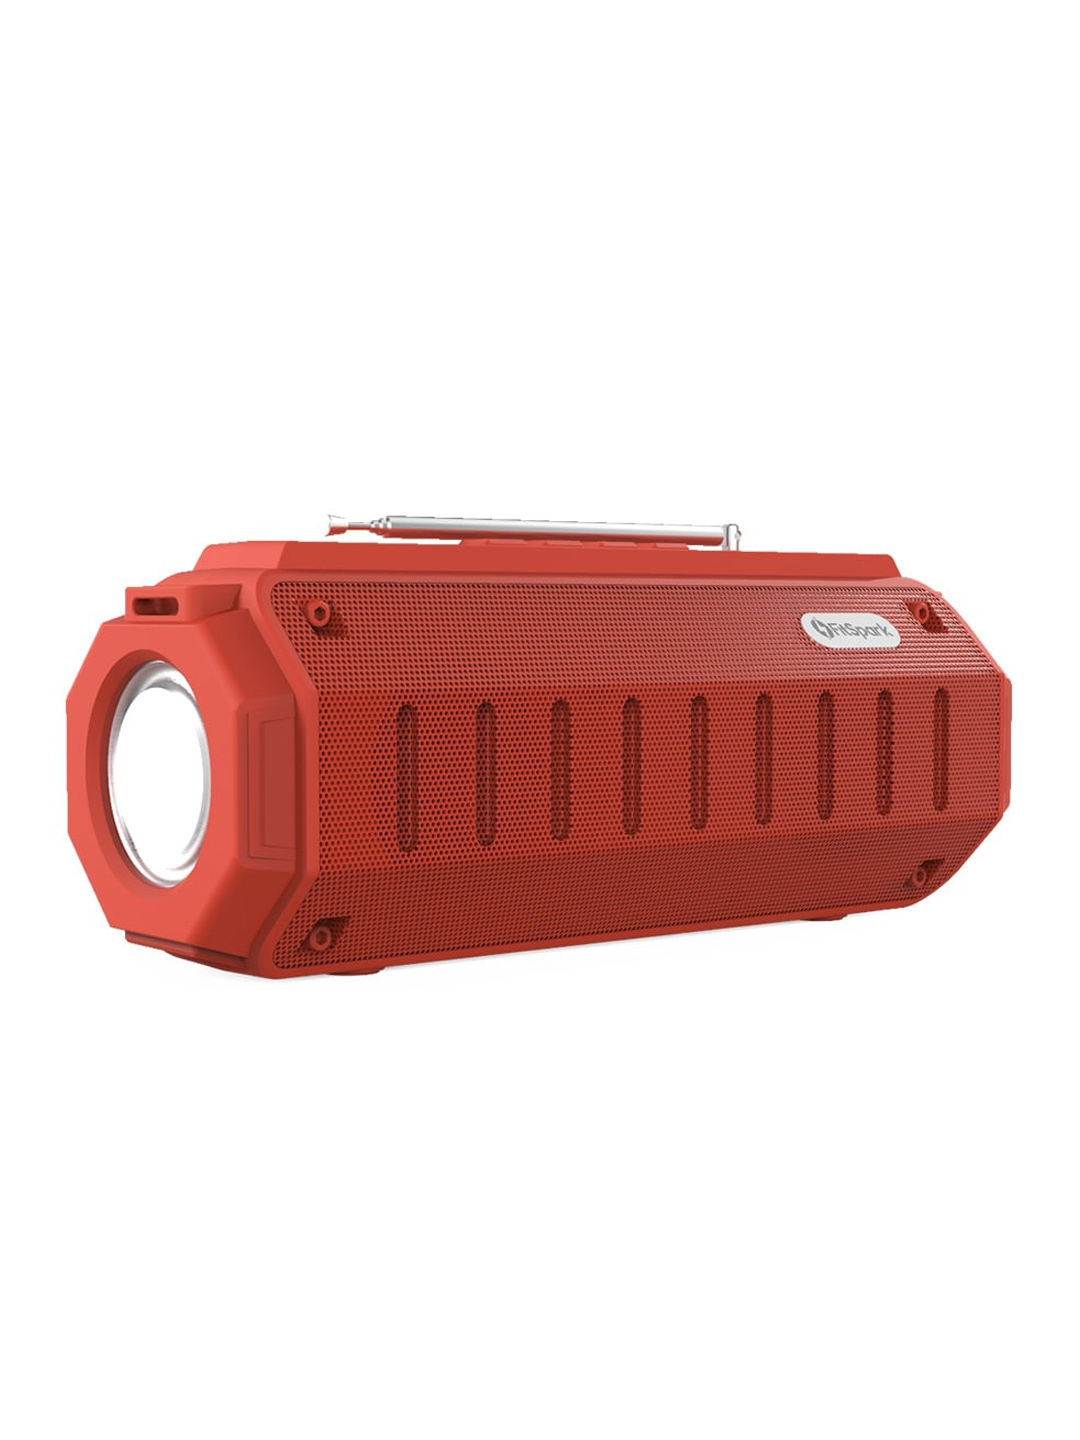 FitSpark Red DHUN Portable Wireless Speaker with LED Lights